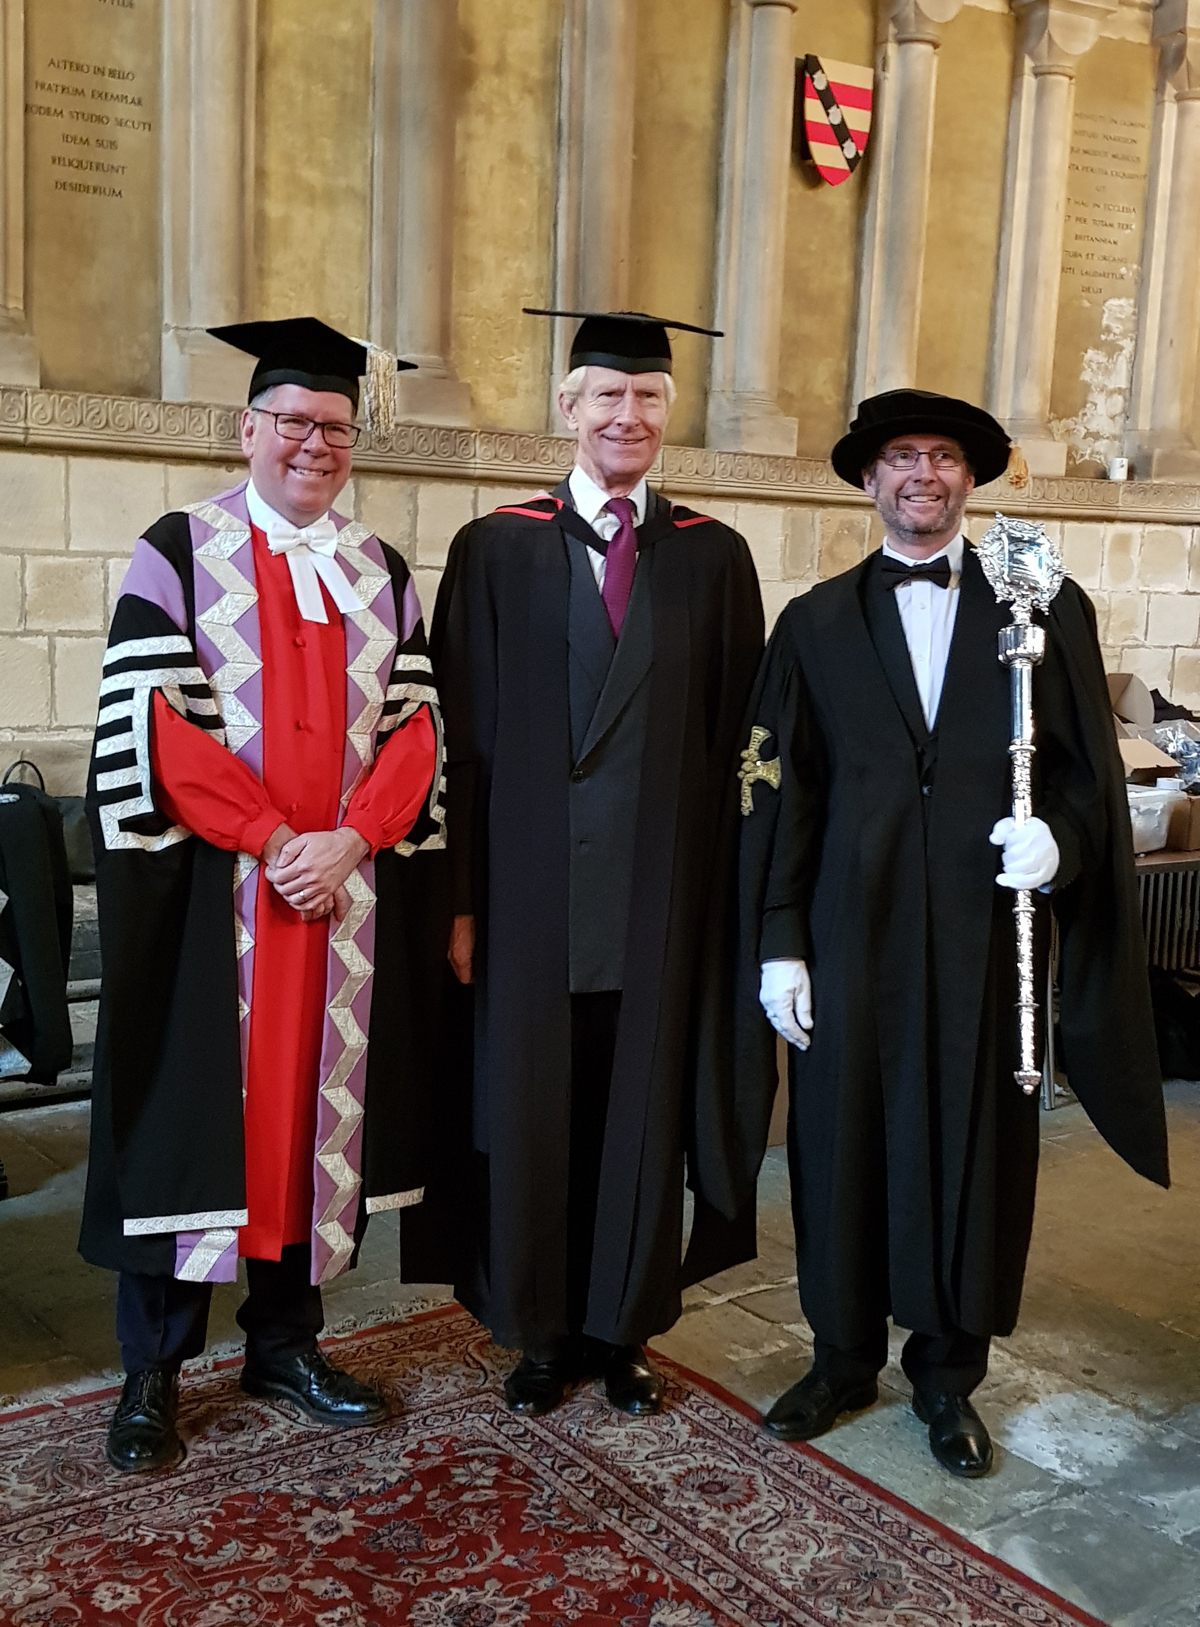 Bradshaw Foundation Chairman awarded honorary degree. Master of Science Honoris Causa is conferred upon Damon de Laszlo at the University of Durham. Rock art. Archaeology